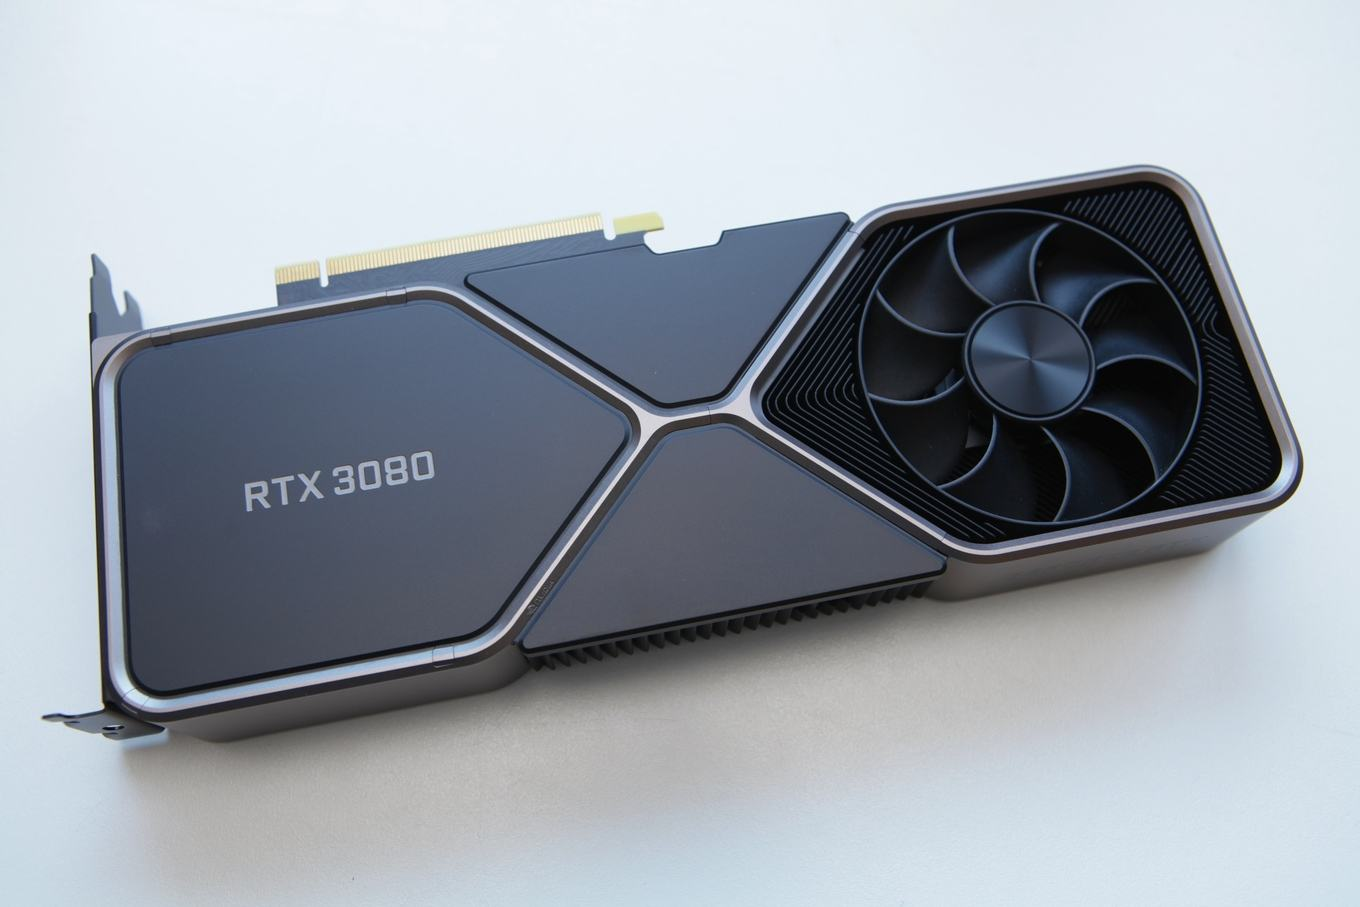 Nvidia Geforce Rtx 3080 The First Test In Mining On The Daggerhashimoto Ethash Algorithm Последние твиты от whattomine (@whattomine). nvidia geforce rtx 3080 the first